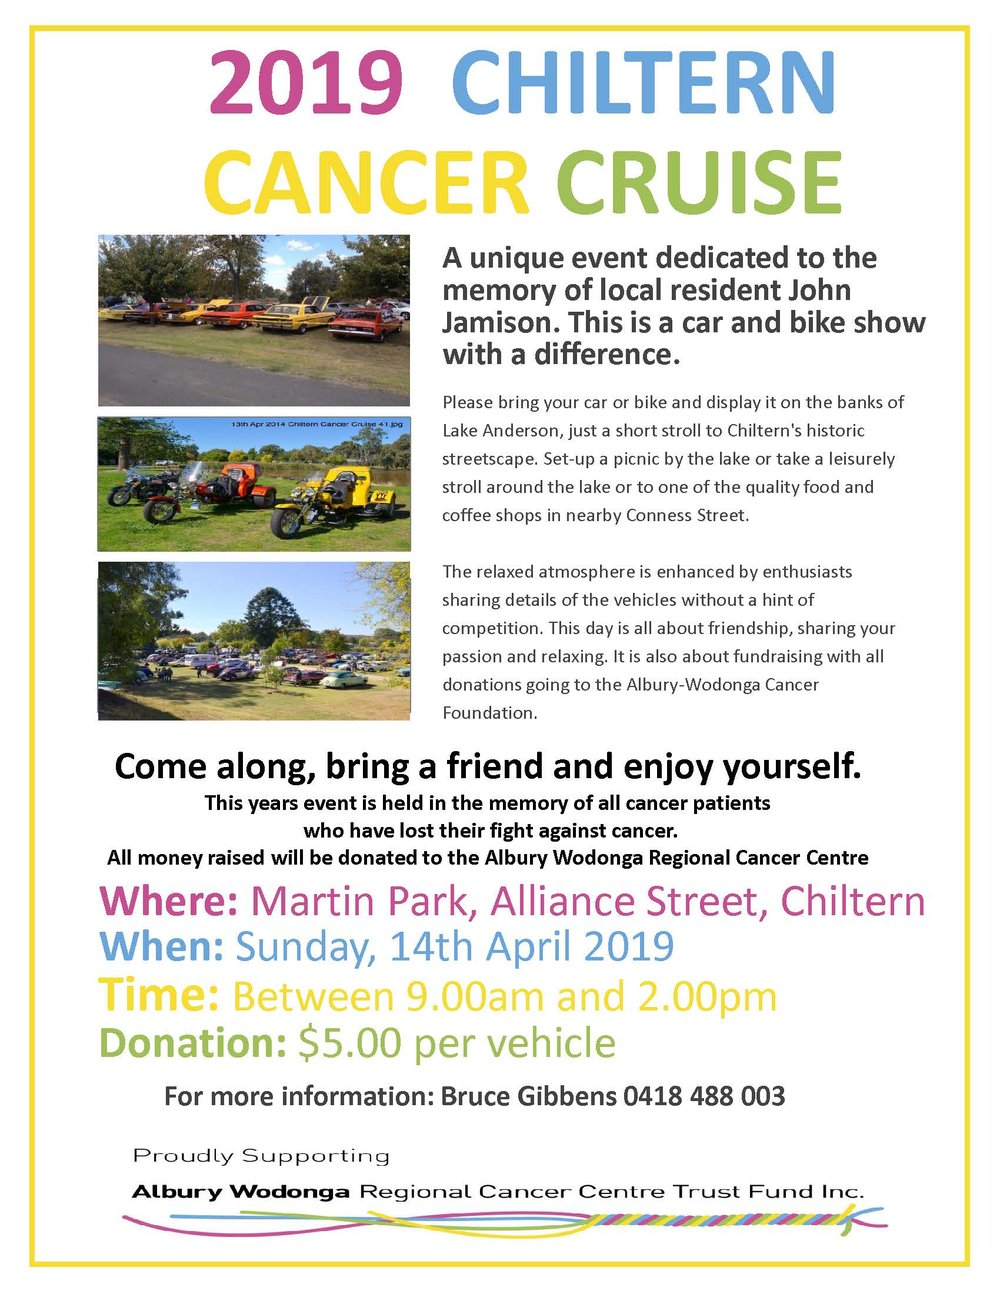 Chiltern Cancer Cruise.jpg